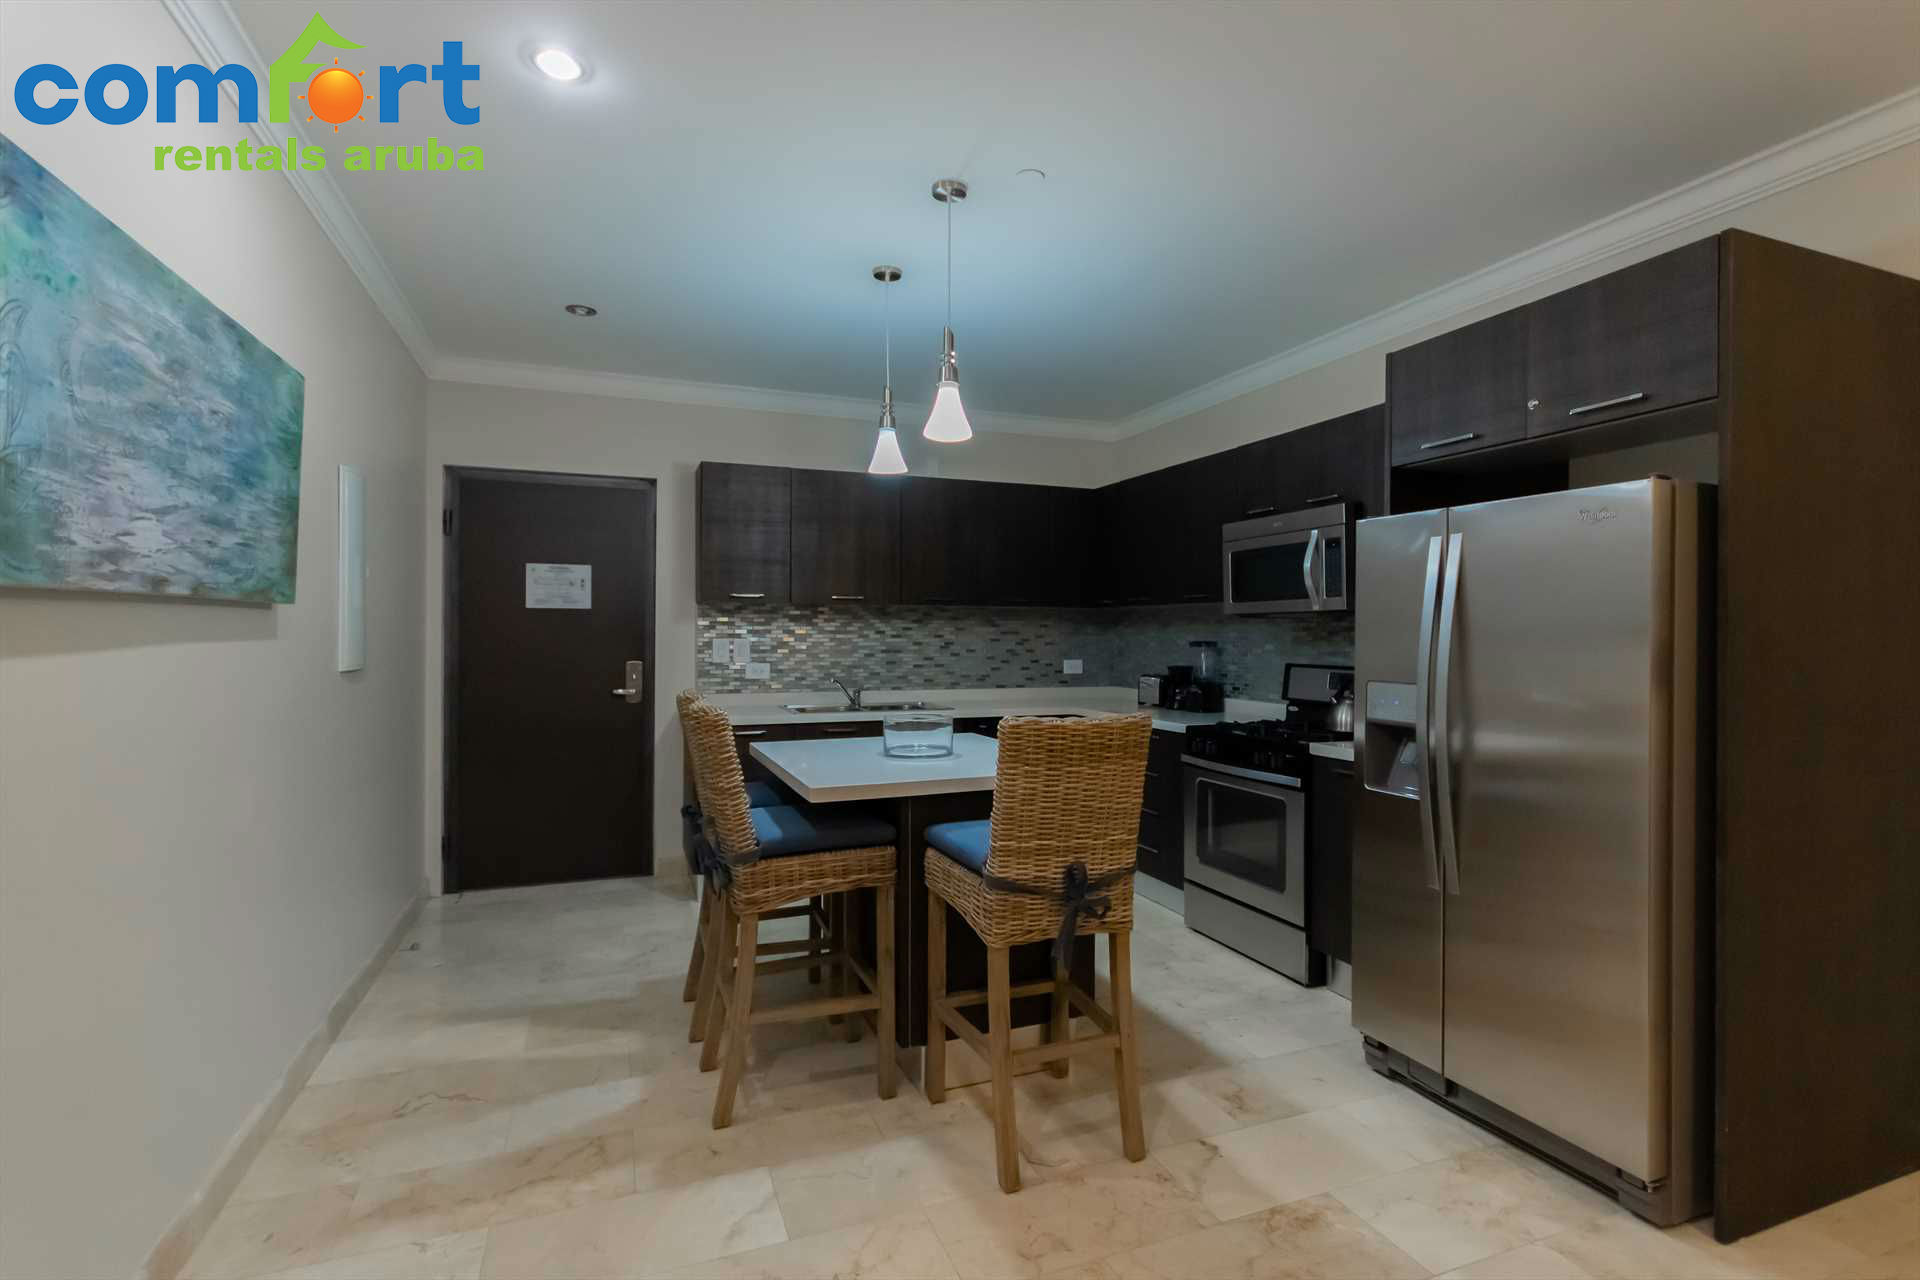 Prepare delicious meals in your fully equipped kitchen